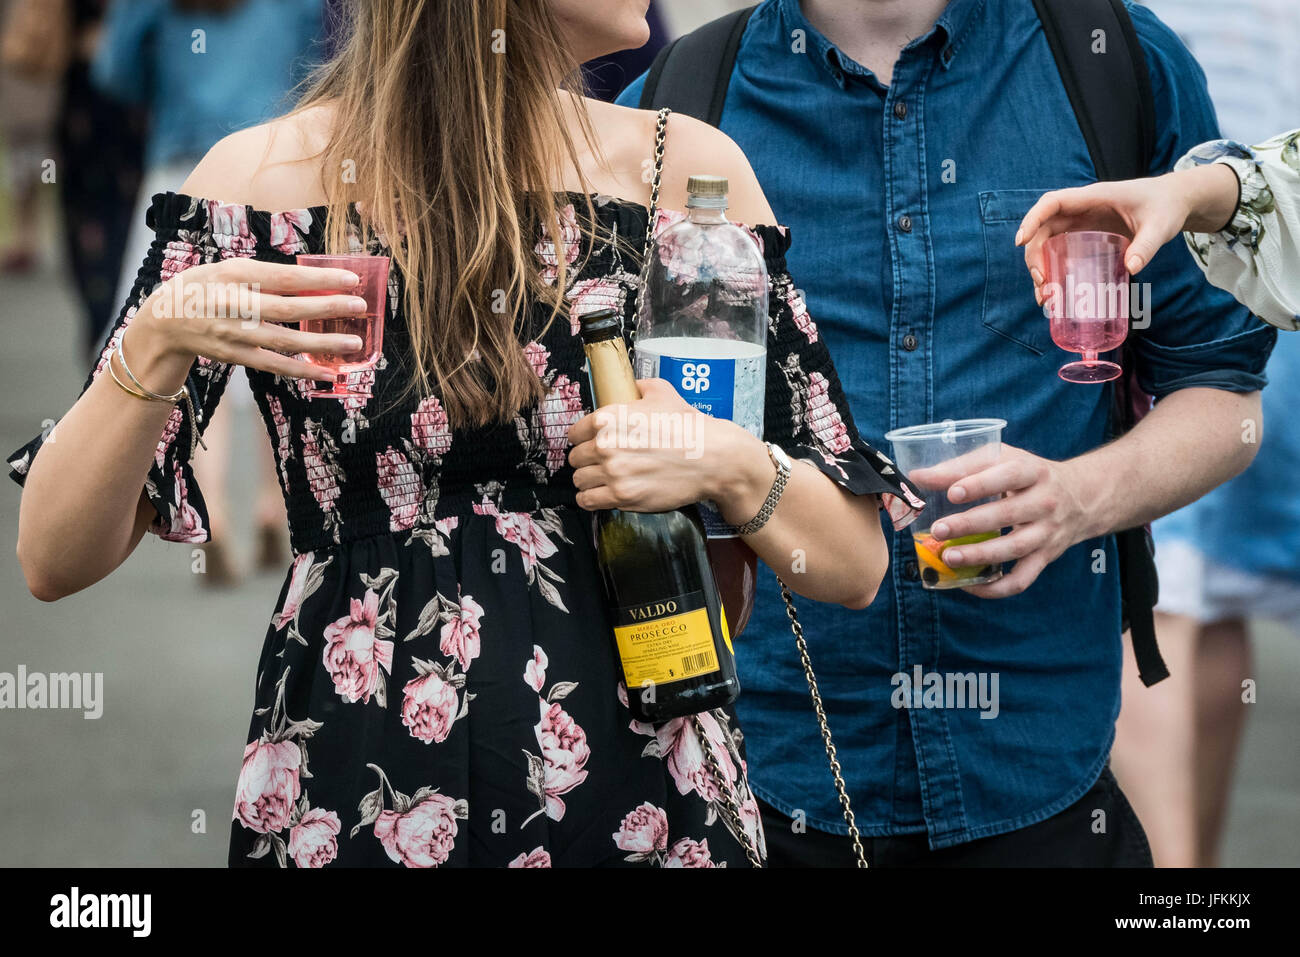 Henley-on-Thames, Oxfordshire, UK. 1st July, 2017. Alcohol consumption during Henley Royal Regatta. Credit: Guy - Stock Image